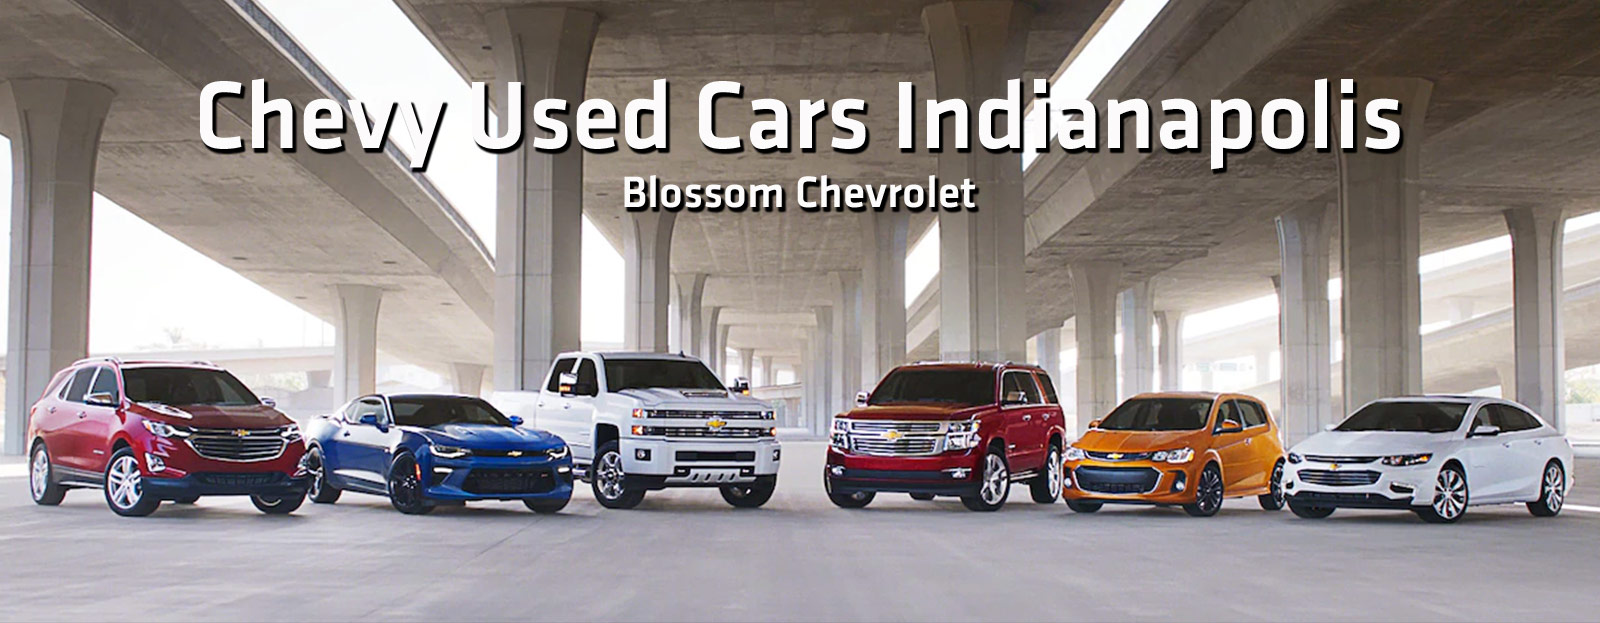 Used Cars Indianapolis >> Used Cars Indianapolis Blossom Chevy Dealership